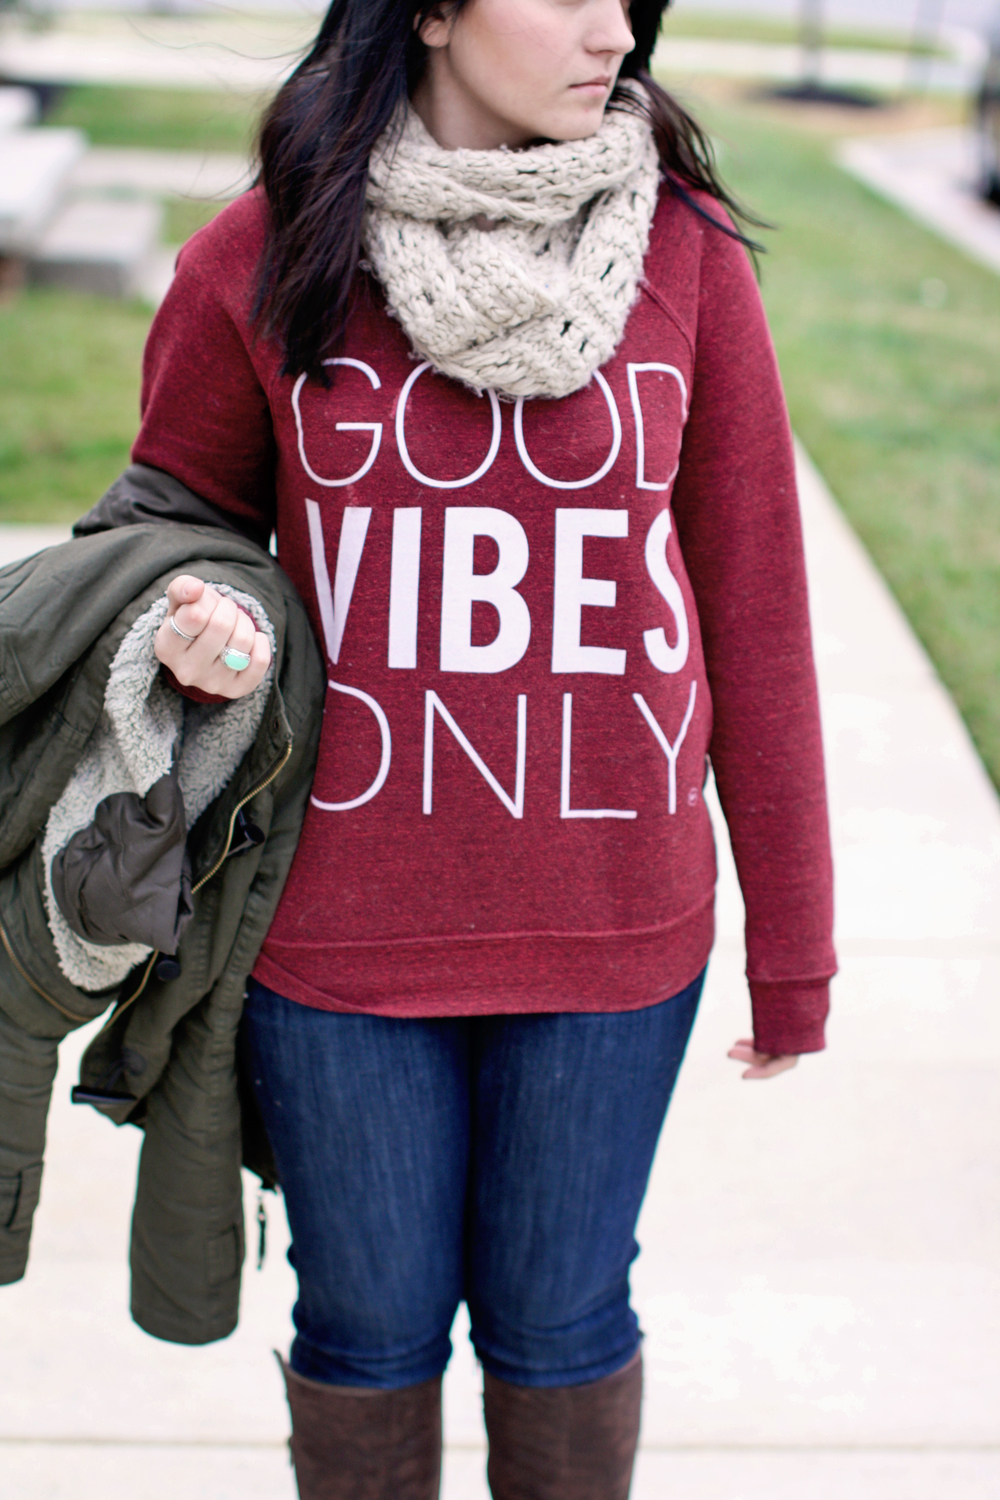 Good Vibes Only www.chelceytate.com